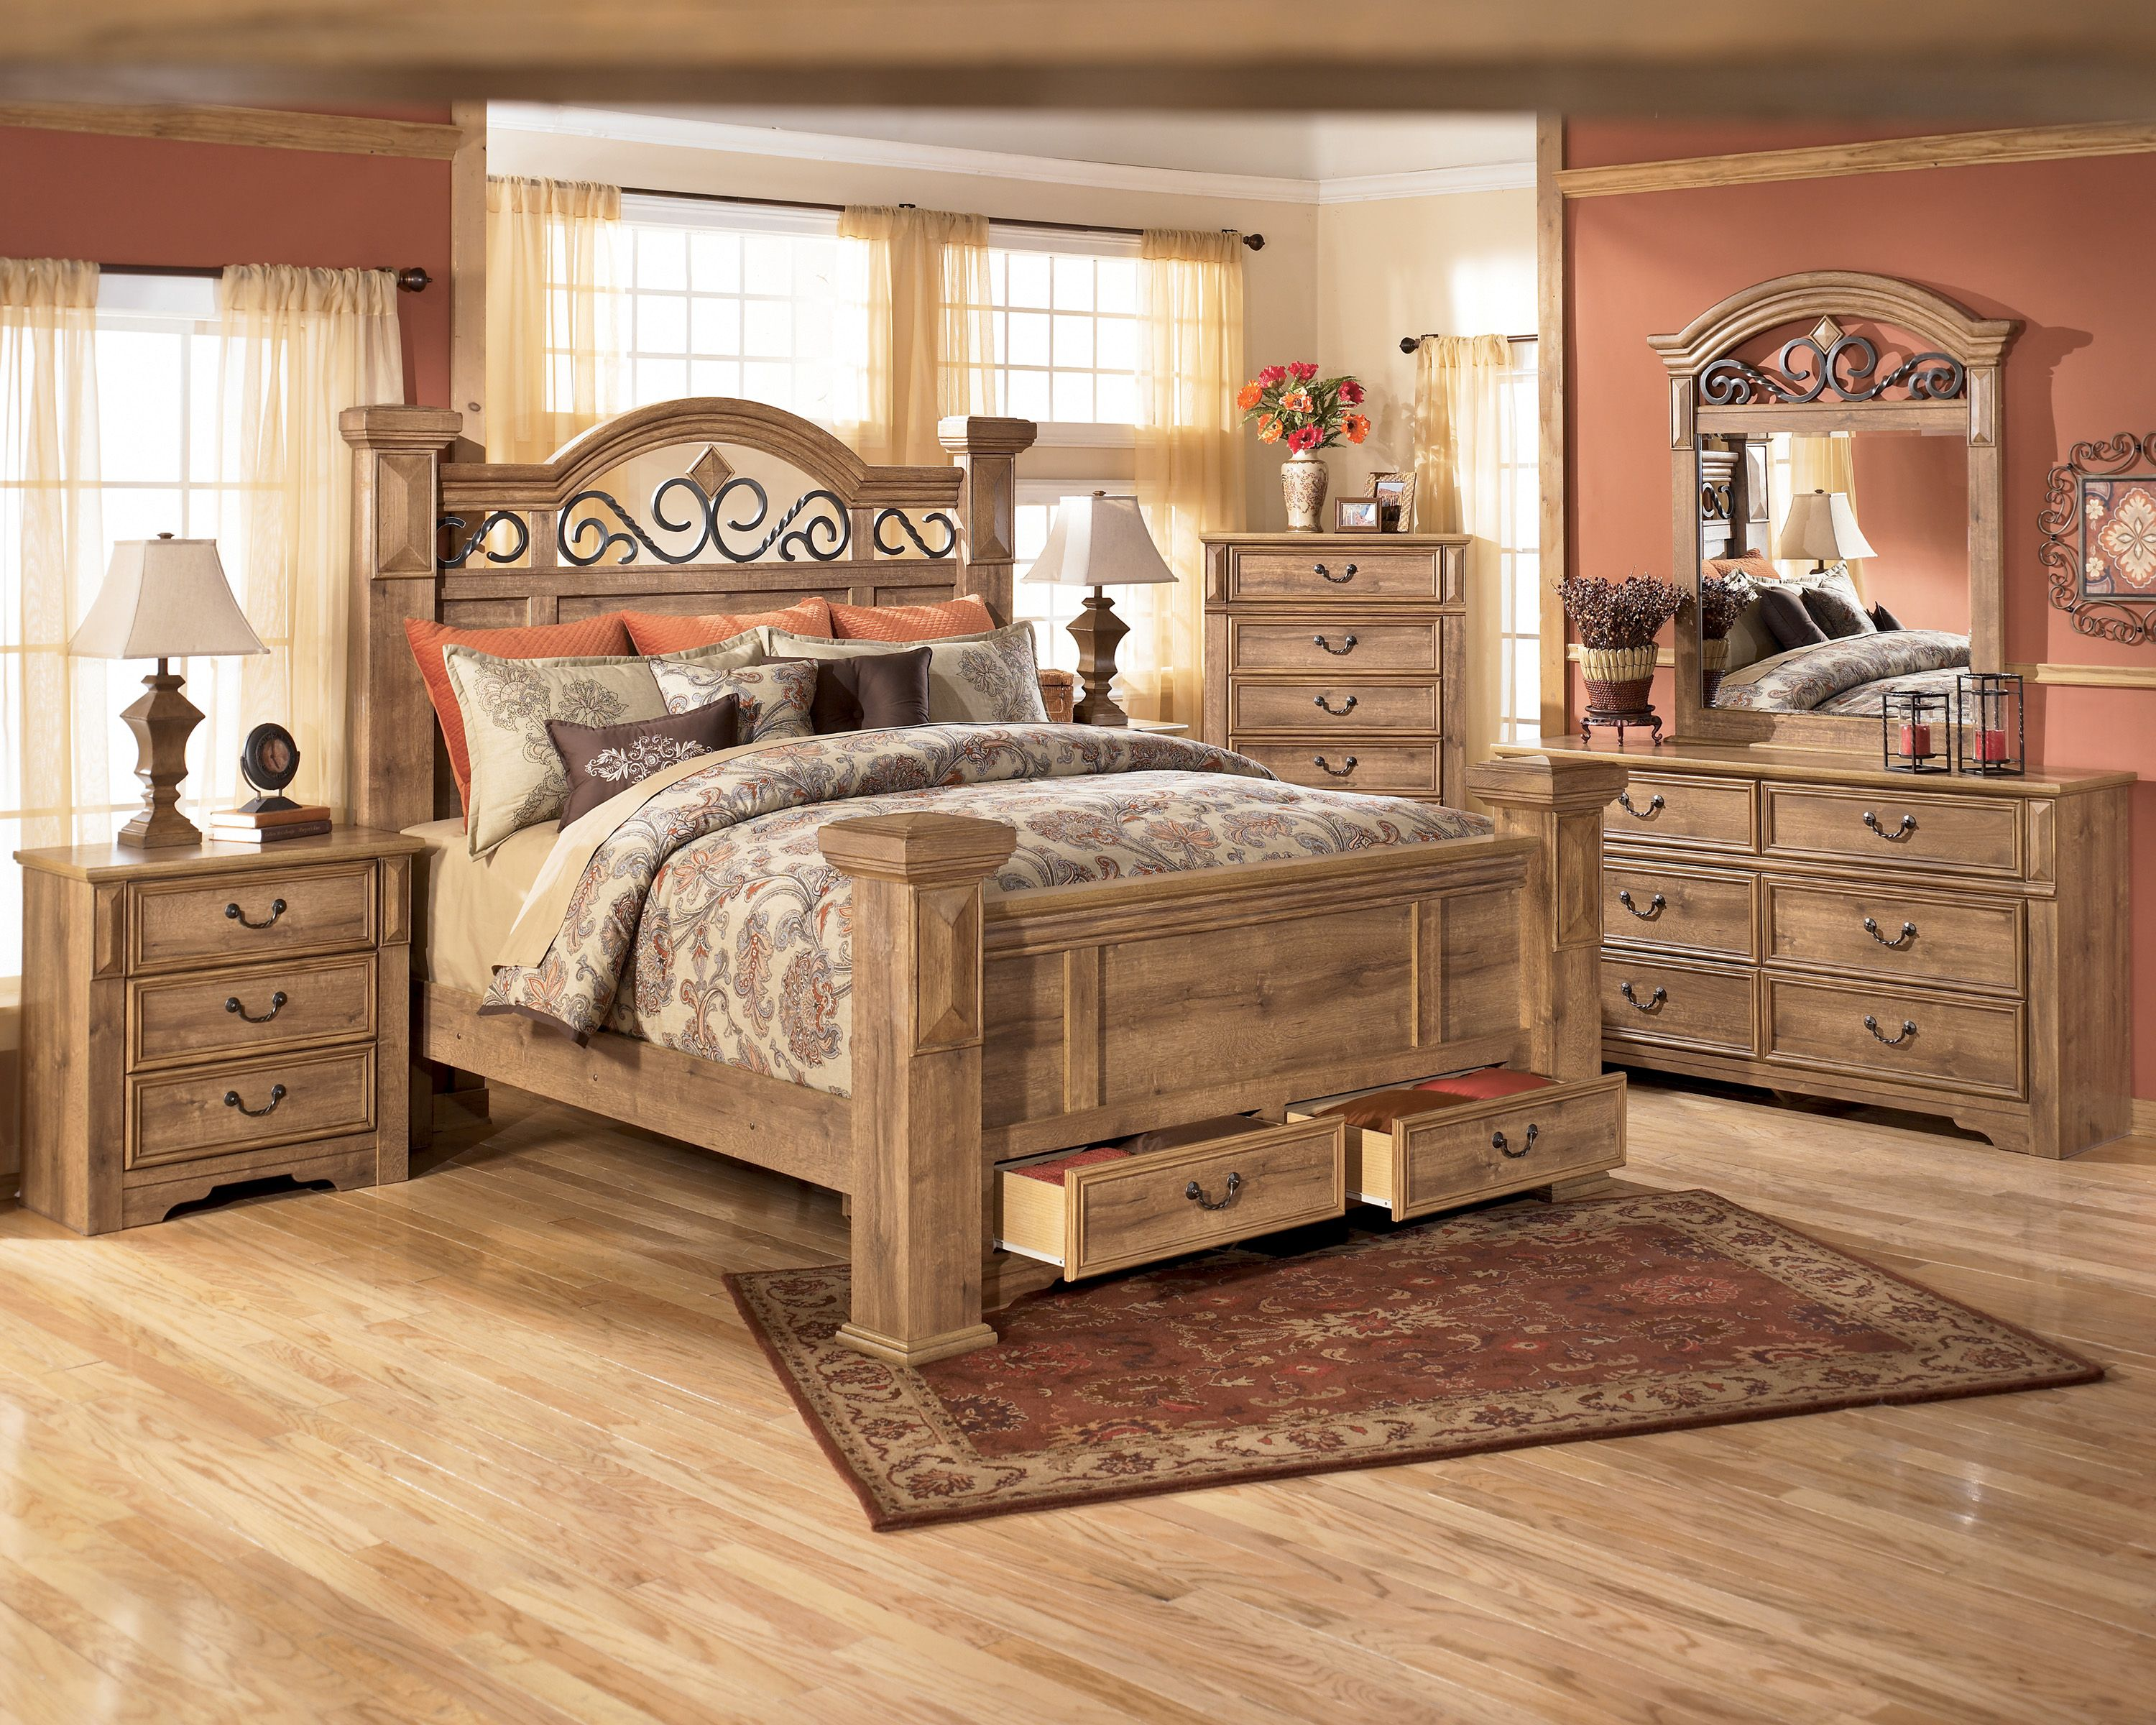 Two Bedroom Set Best King Size Bed Set Rosalinda Bedroom Sets In 2019